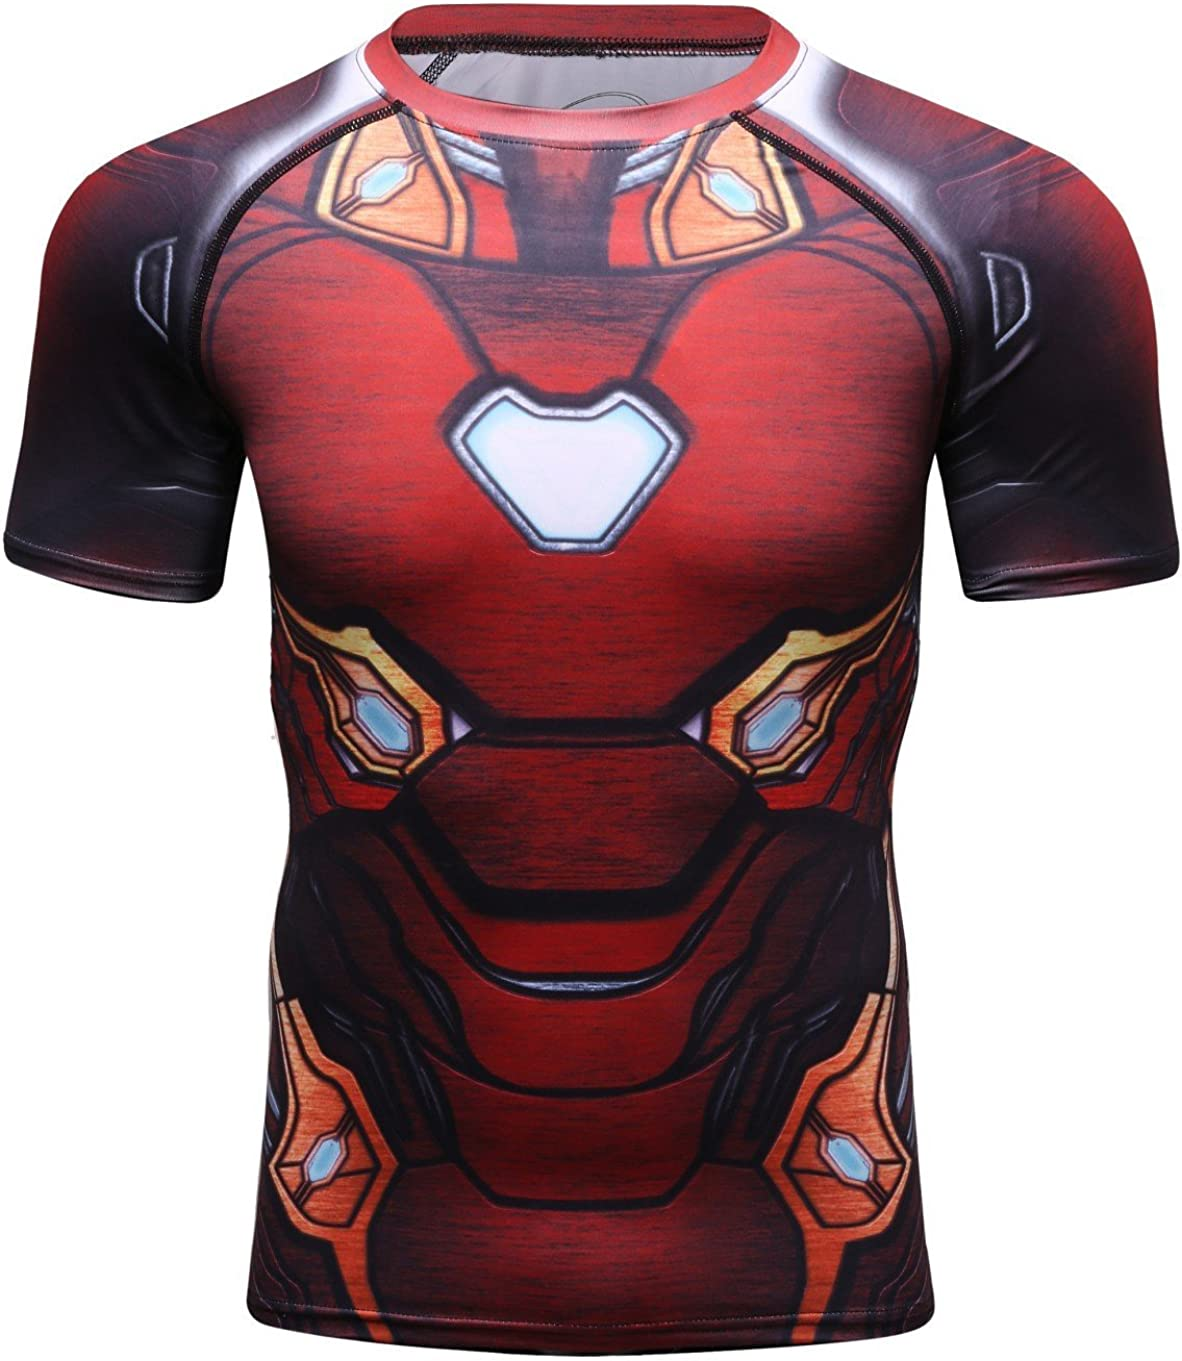 Red Plume Mens Dri-Fit Compression Short Sleeve Shirts Running Tee Base Layer Tops